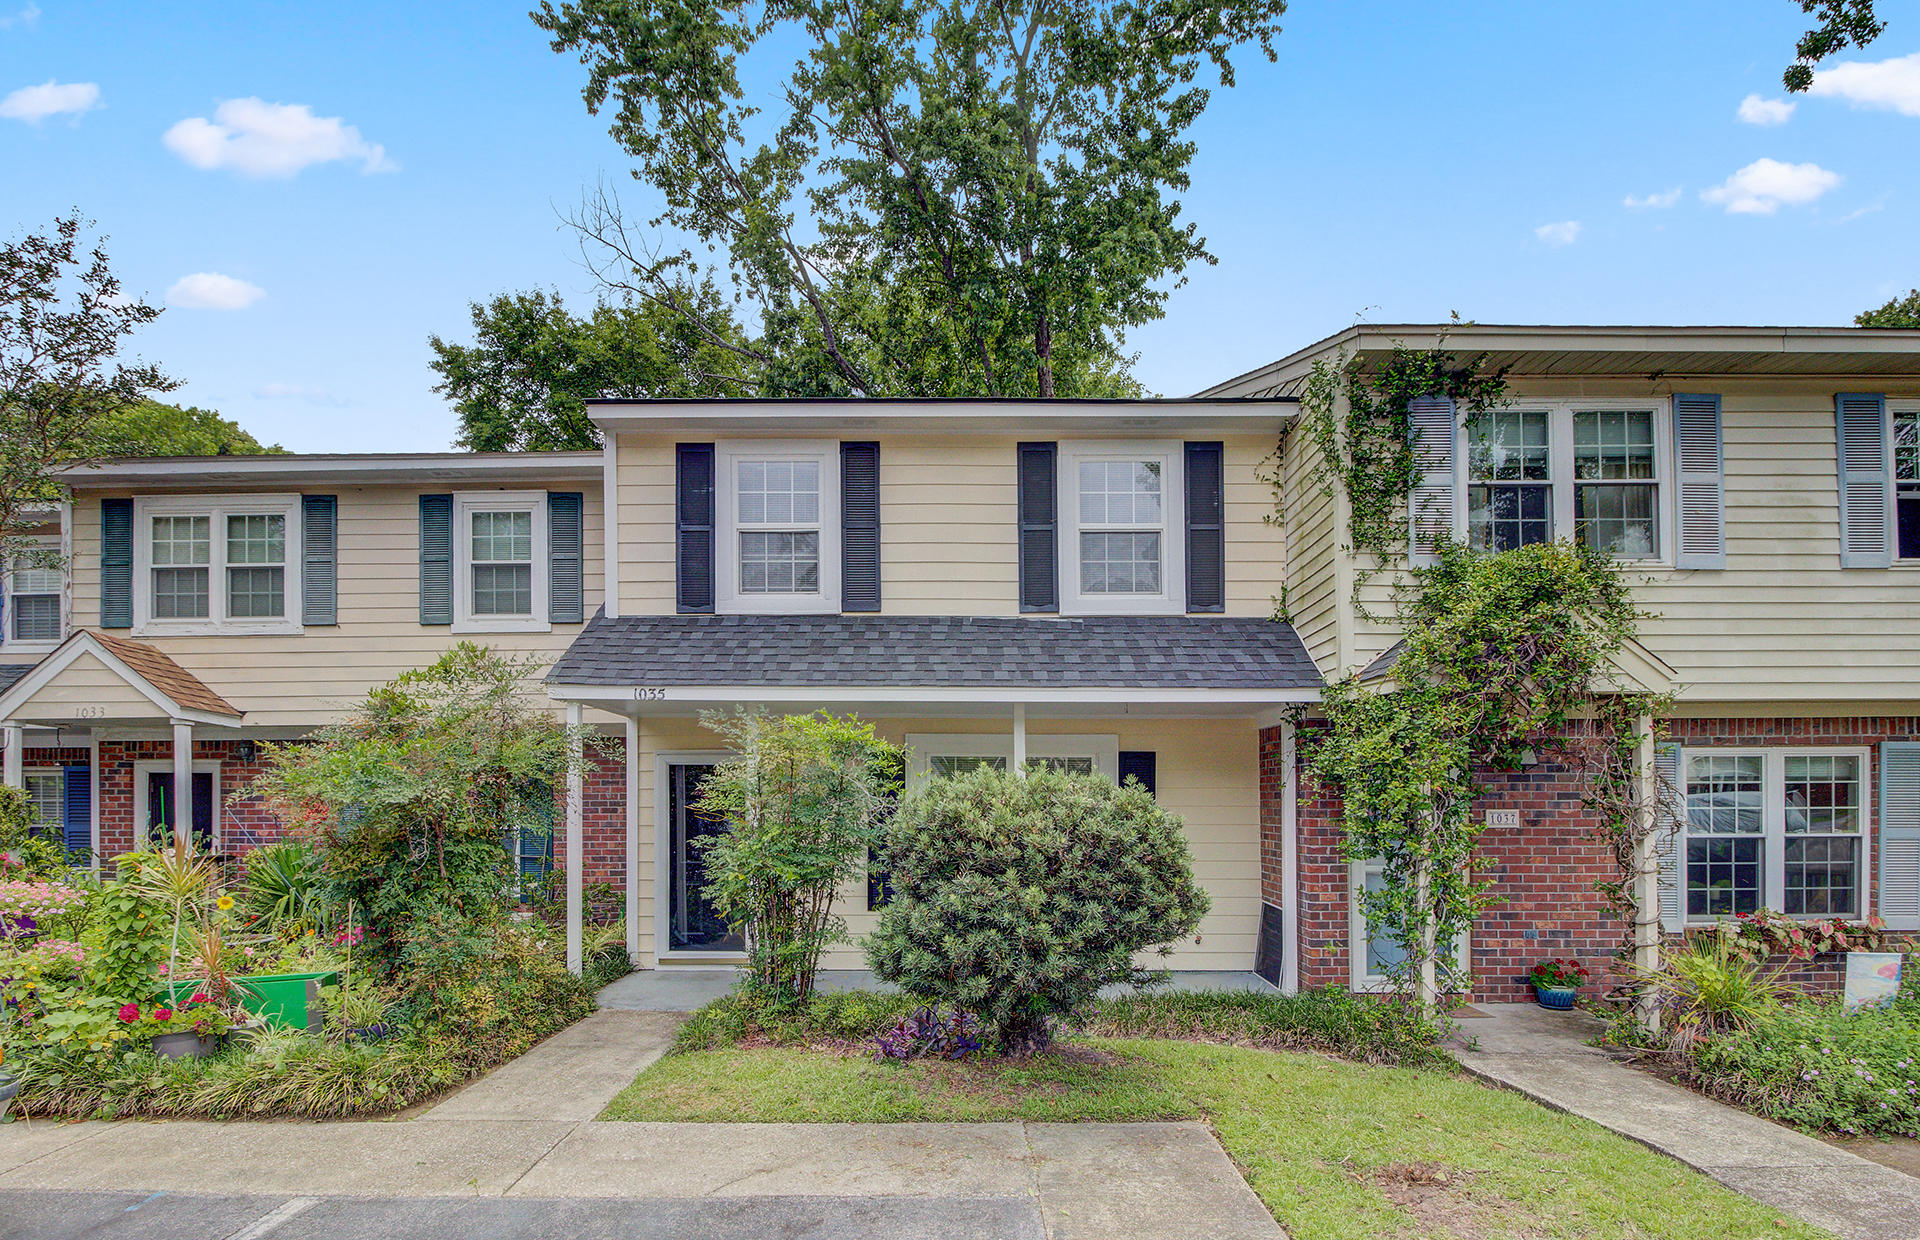 Hunters Trace Homes For Sale - 1035 Hunters, Mount Pleasant, SC - 8